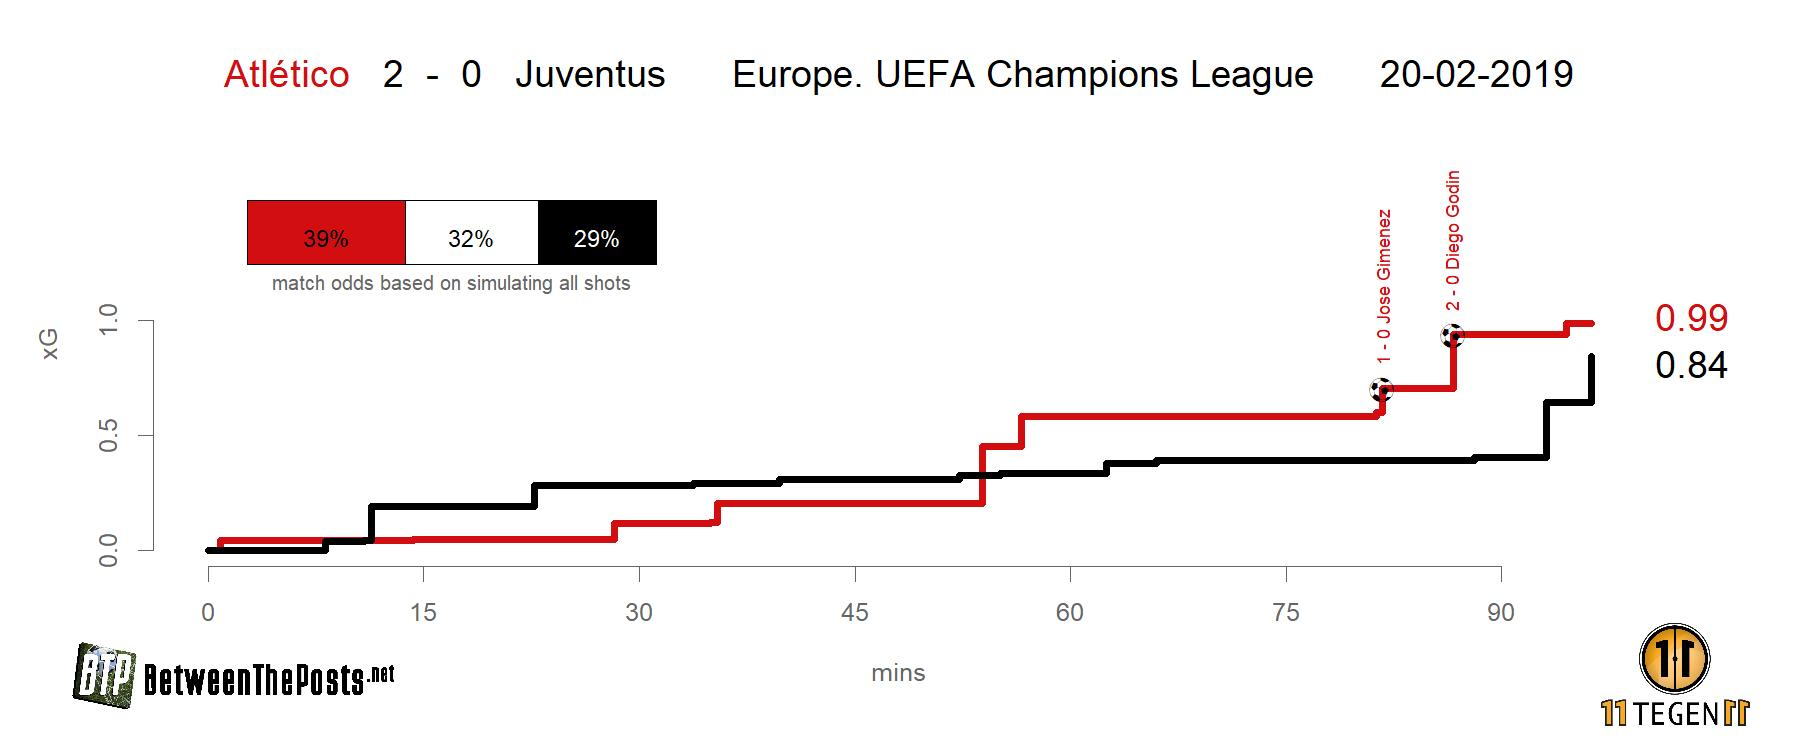 Expected goals plot Atlético Madrid - Juventus 2-0 Champions League